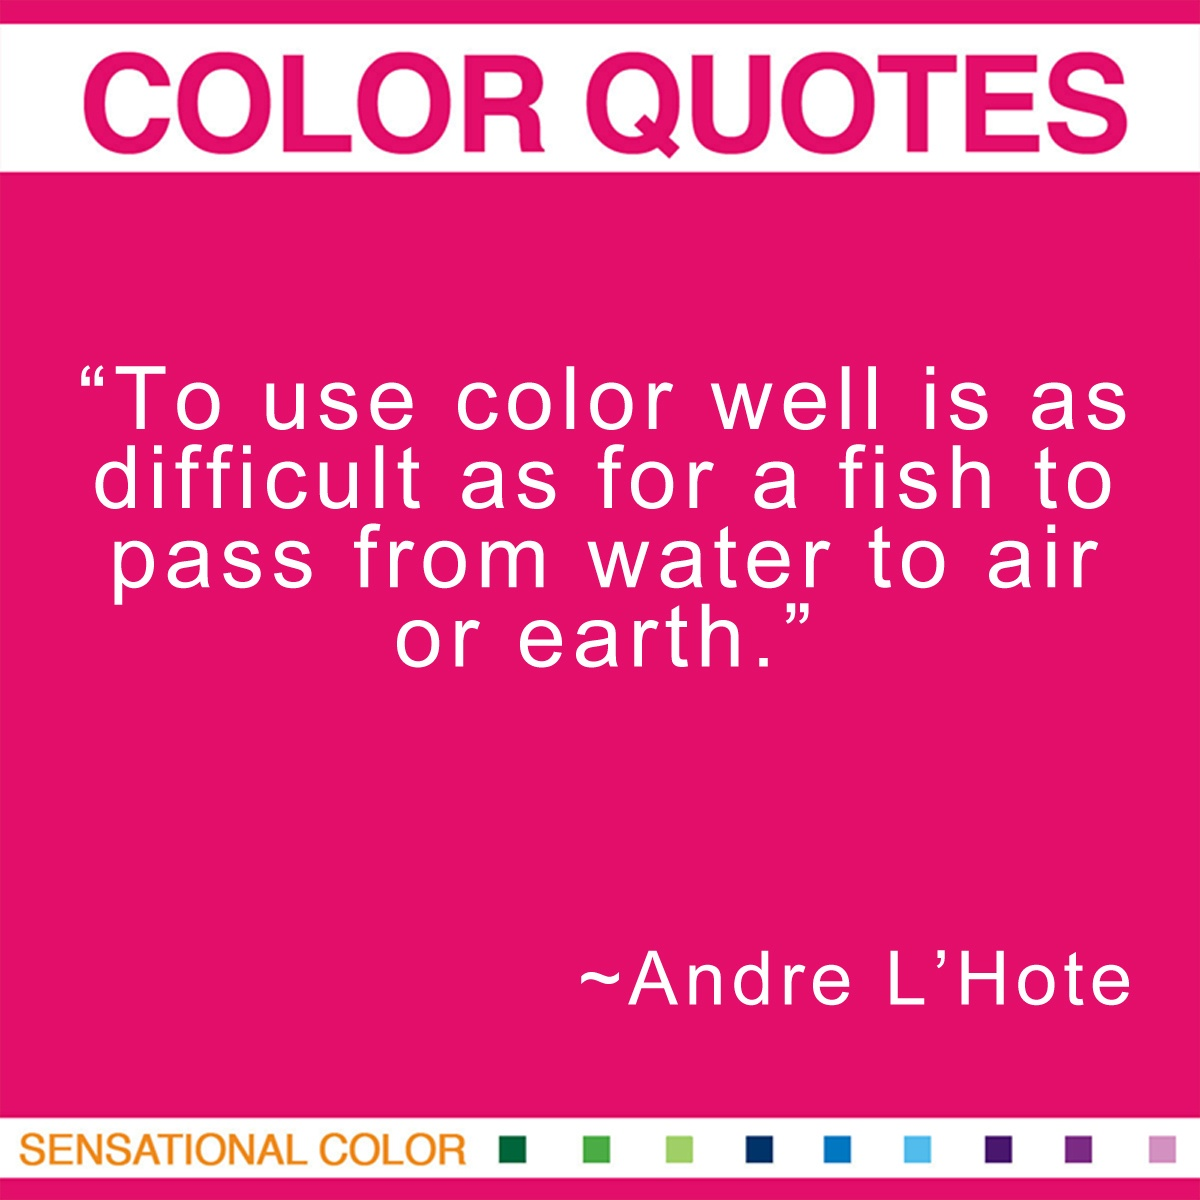 """""""To use color well is as difficult as for a fish to pass from water to air or earth."""" - Andre L'Hote"""